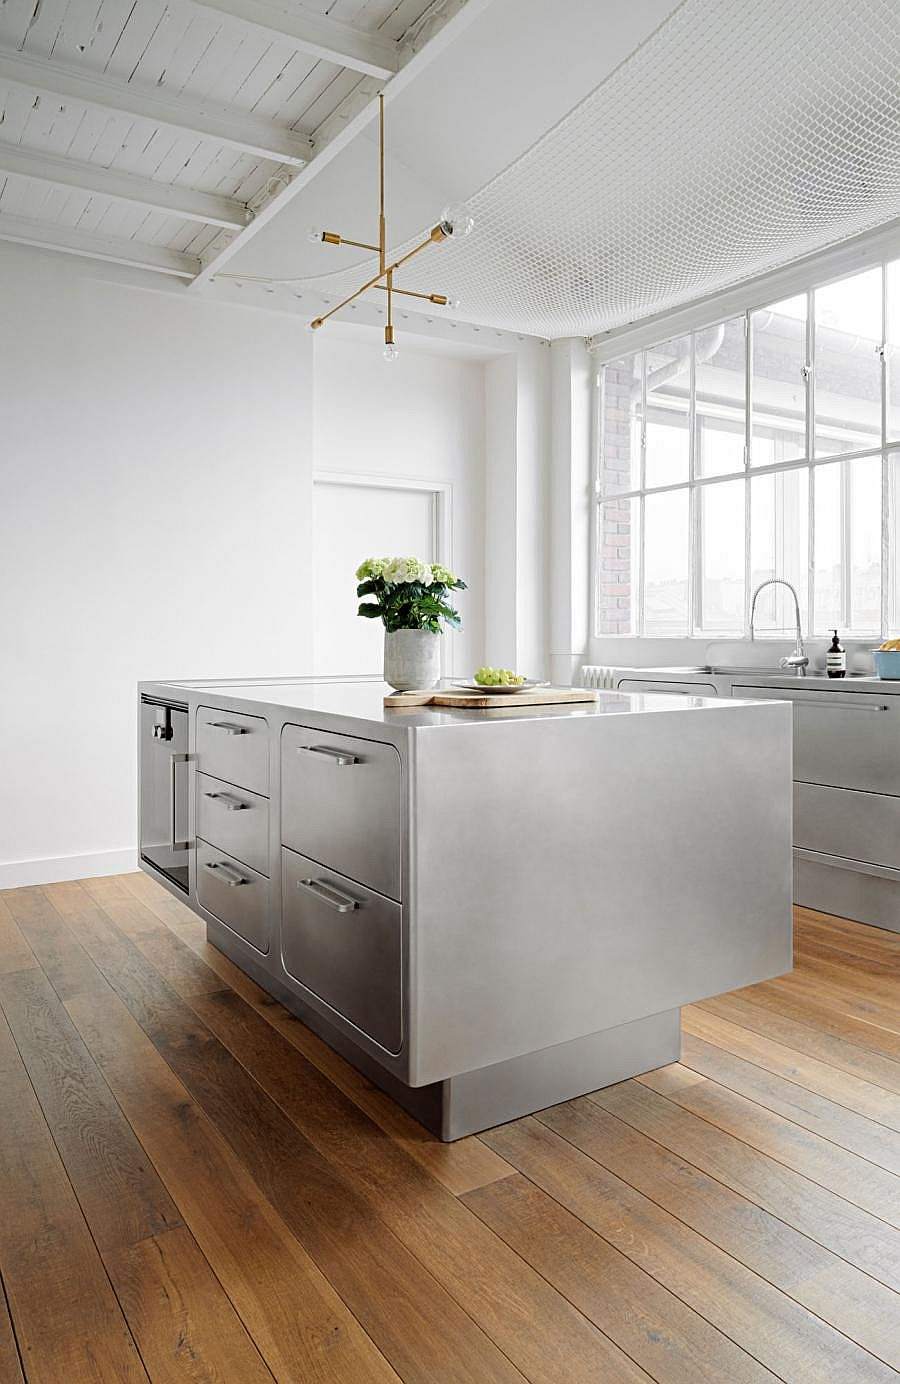 dash kitchen appliances remodel kansas city sizzling stainless steel brings home professional ...